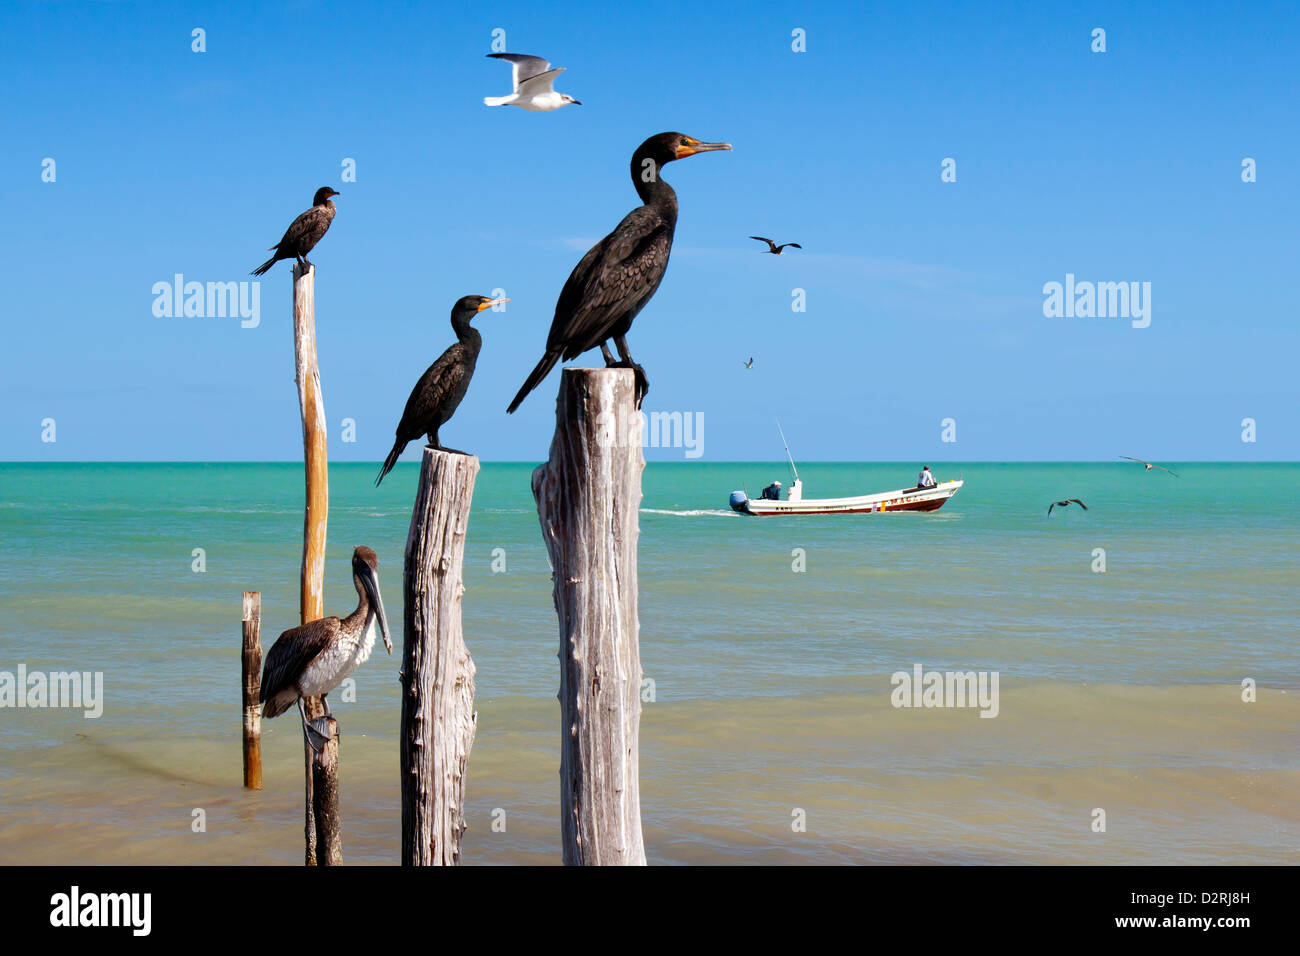 nautical-birds-perched-on-wooden-posts-isla-holbox-mexico-D2RJ8H.jpg